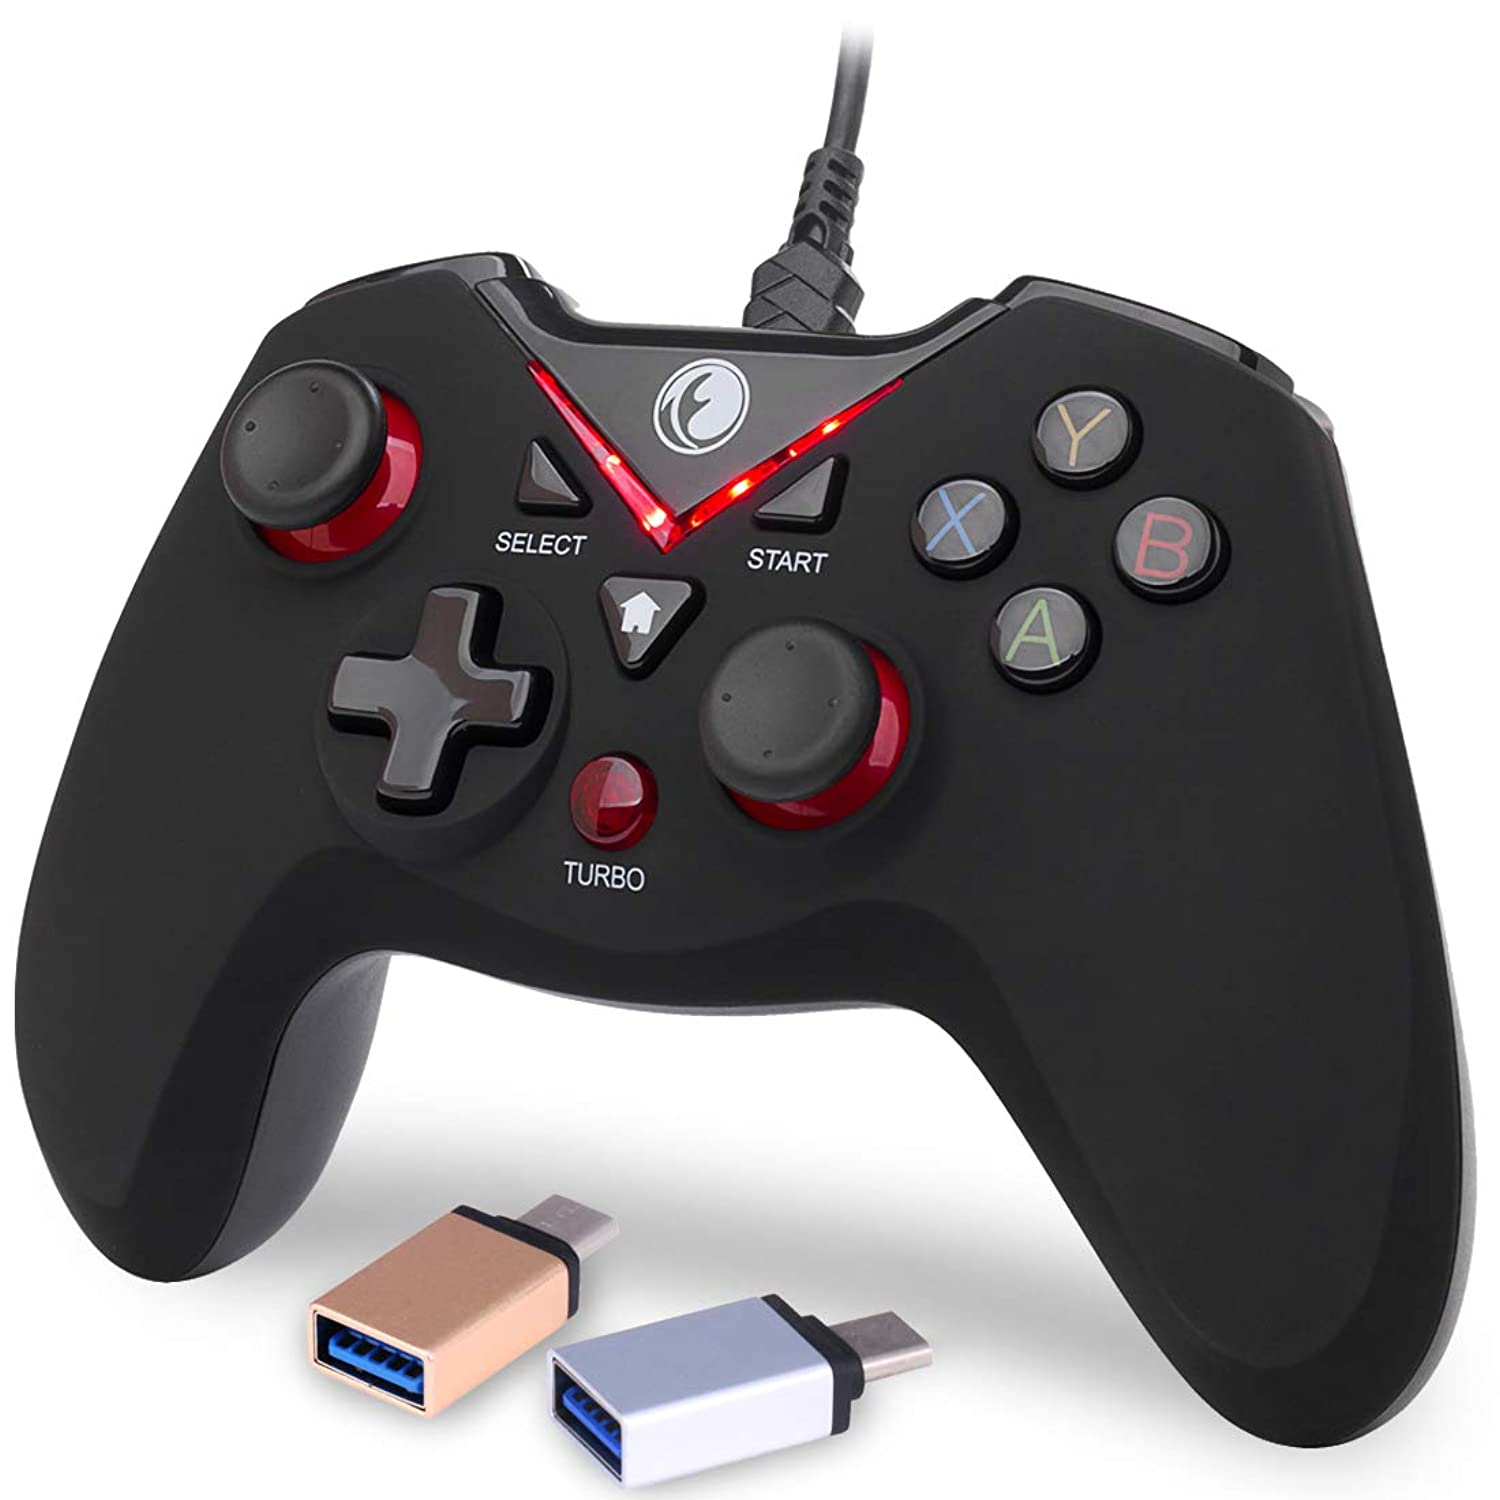 IFYOO V-one Wired USB Gaming Controller Gamepad Joystick for PC Laptop Computer (Windows XP/7/8/10) & Steam & Android & PS3 - [Red,OTG]